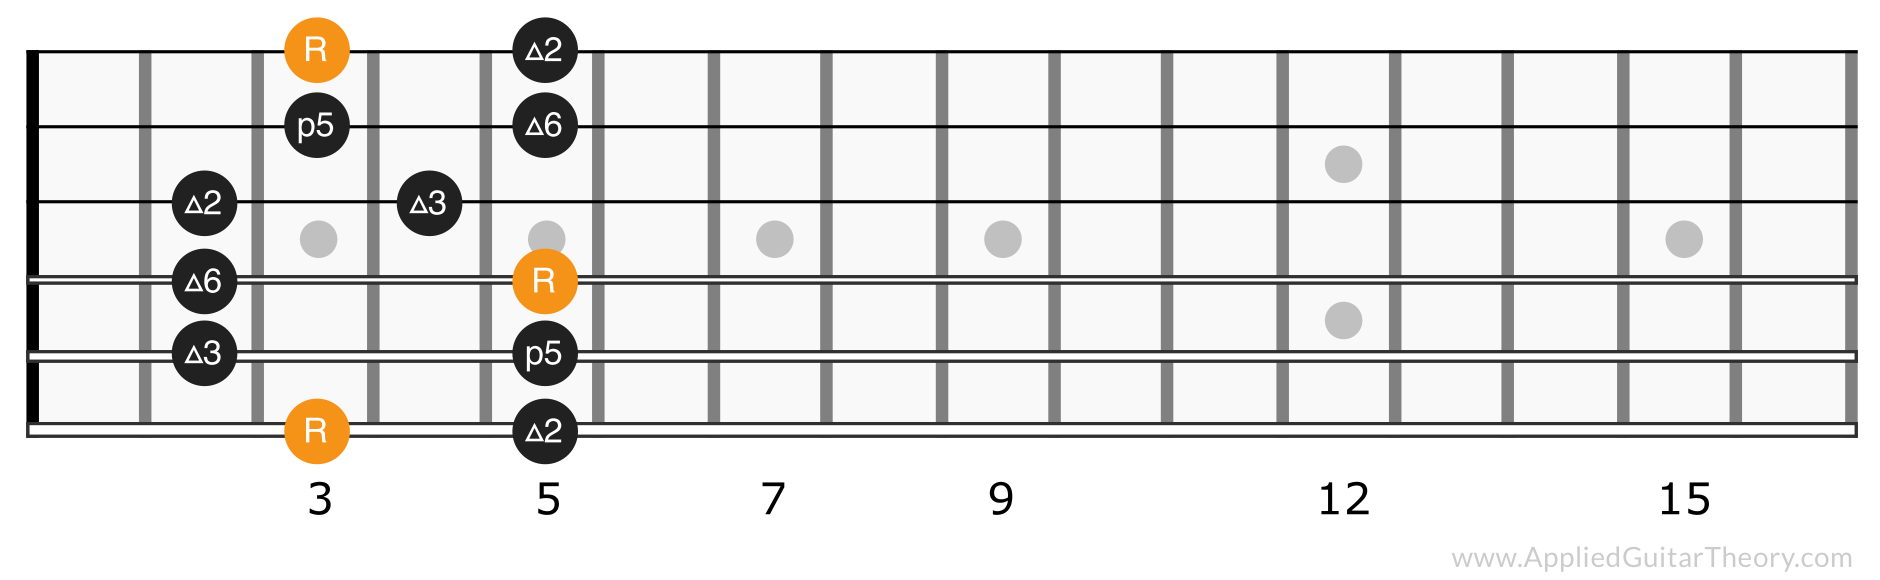 Major pentatonic scale position 1